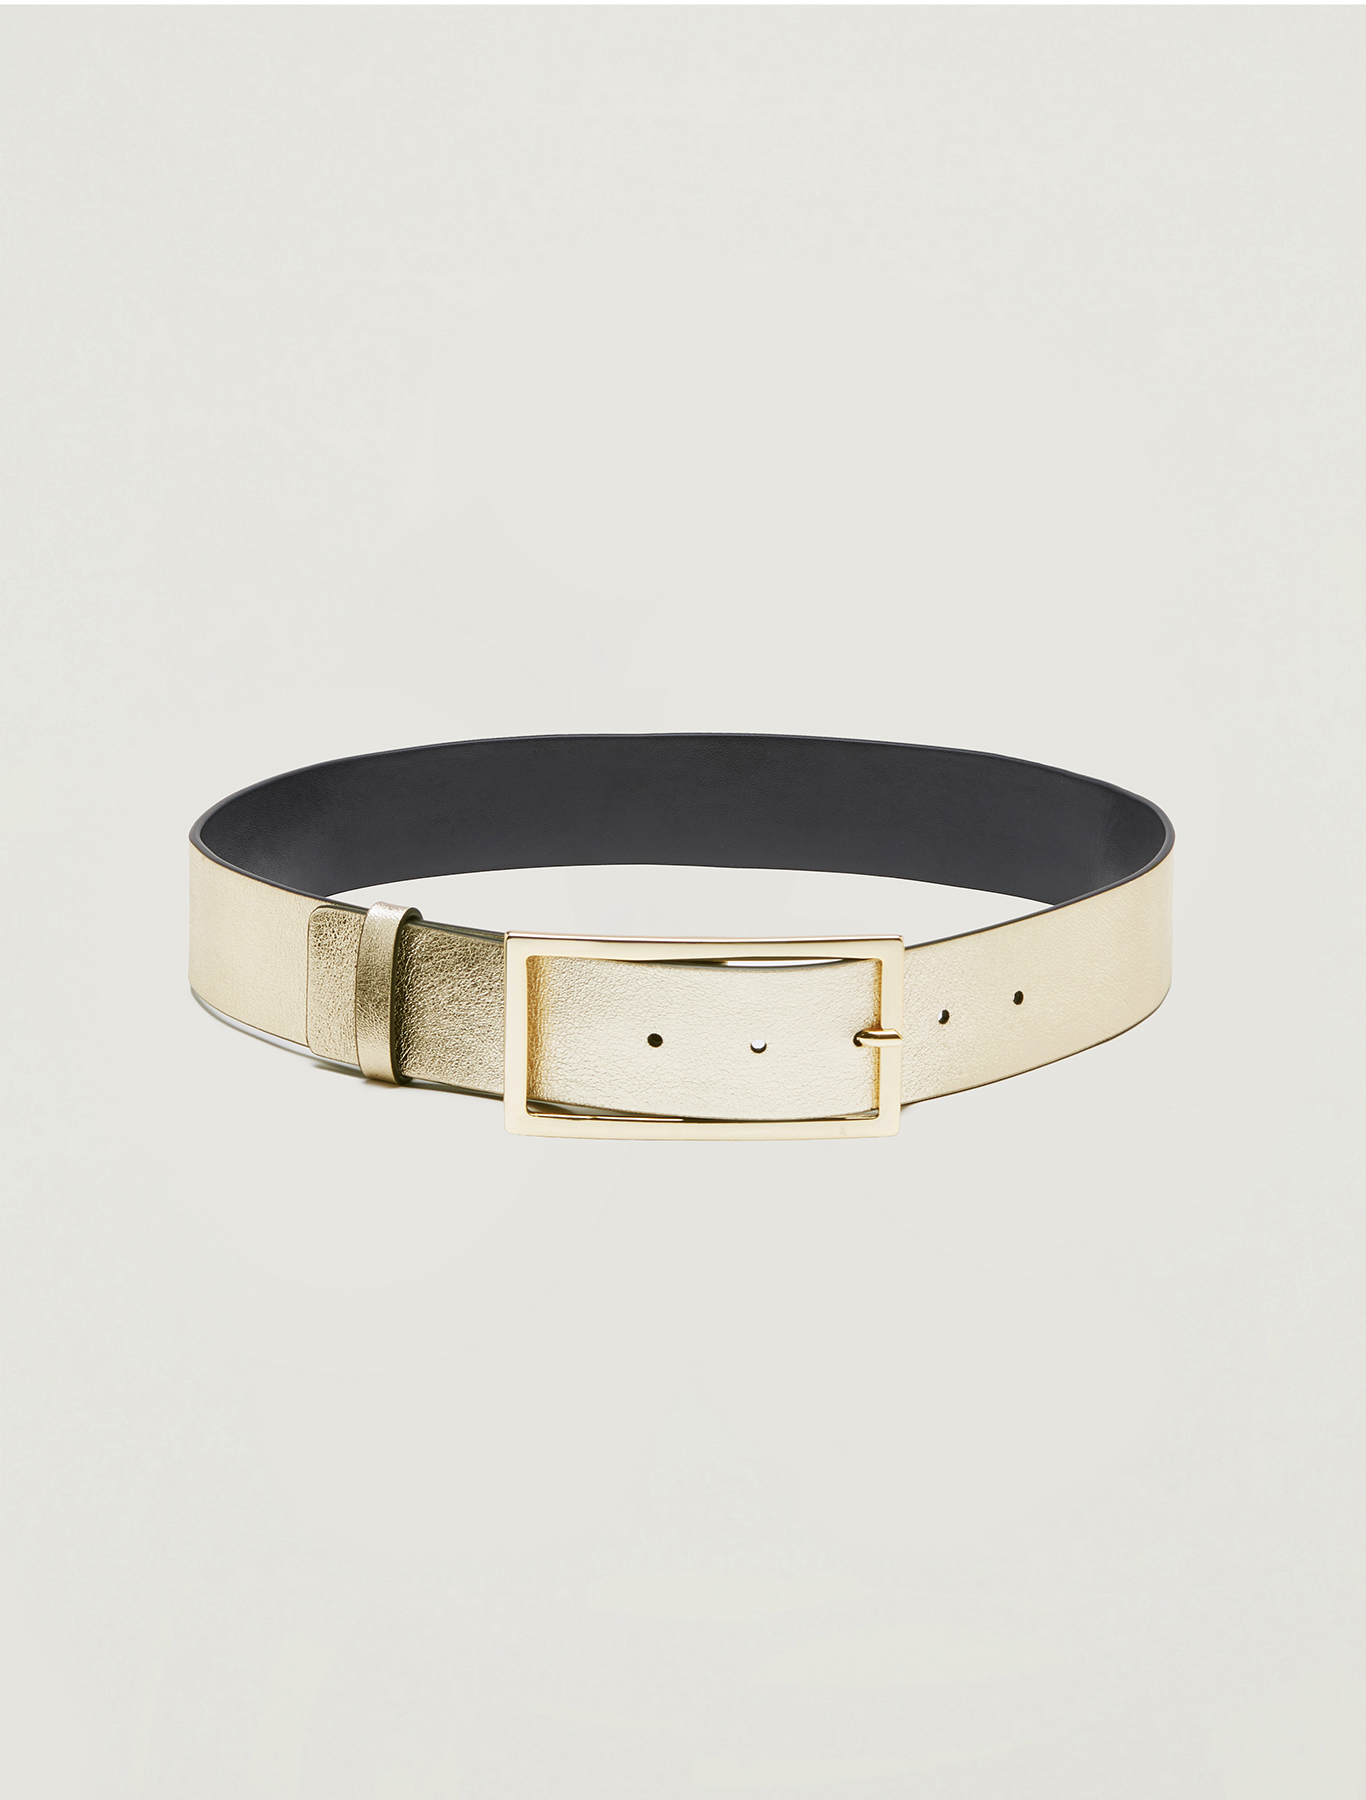 Metallic leather belt - dove-grey - pennyblack